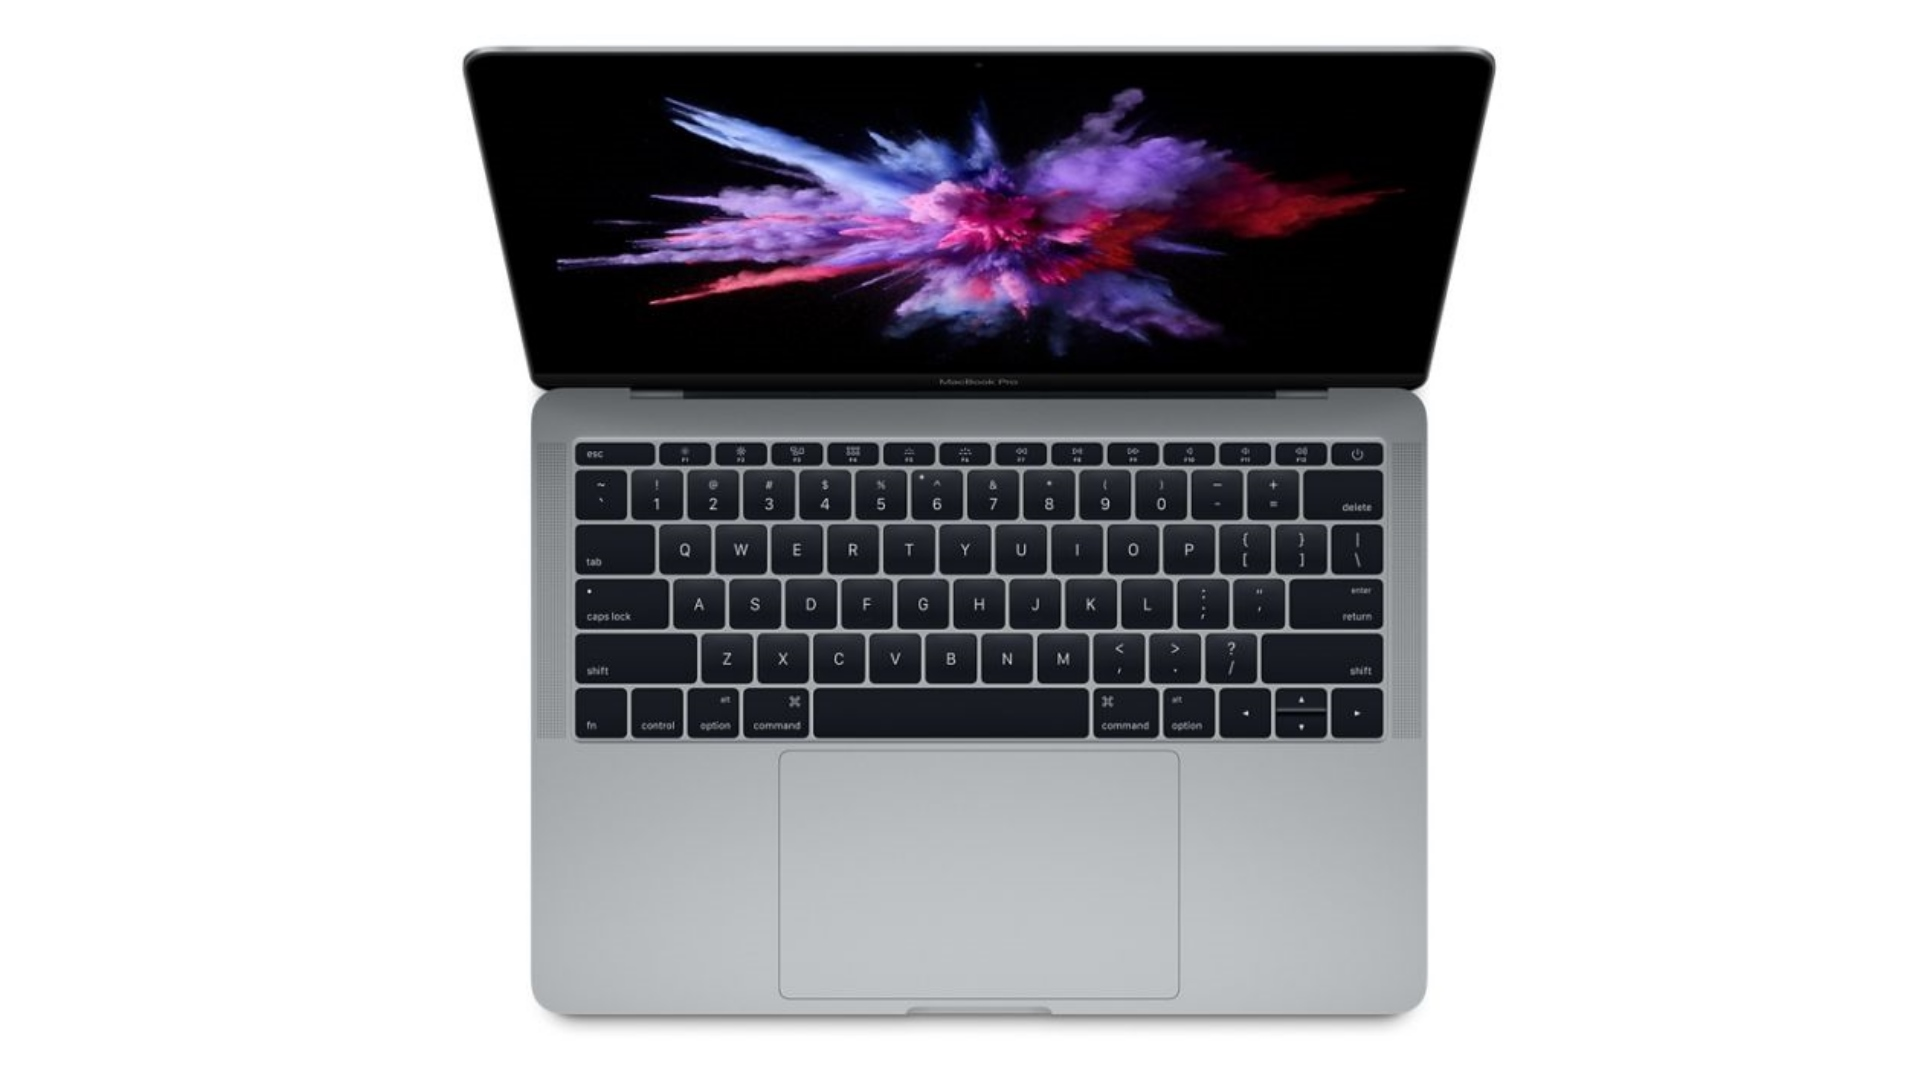 The best cheap MacBook deals on Amazon Prime Day 2018 1531341524_132_the-best-cheap-macbook-deals-on-amazon-prime-day-2018